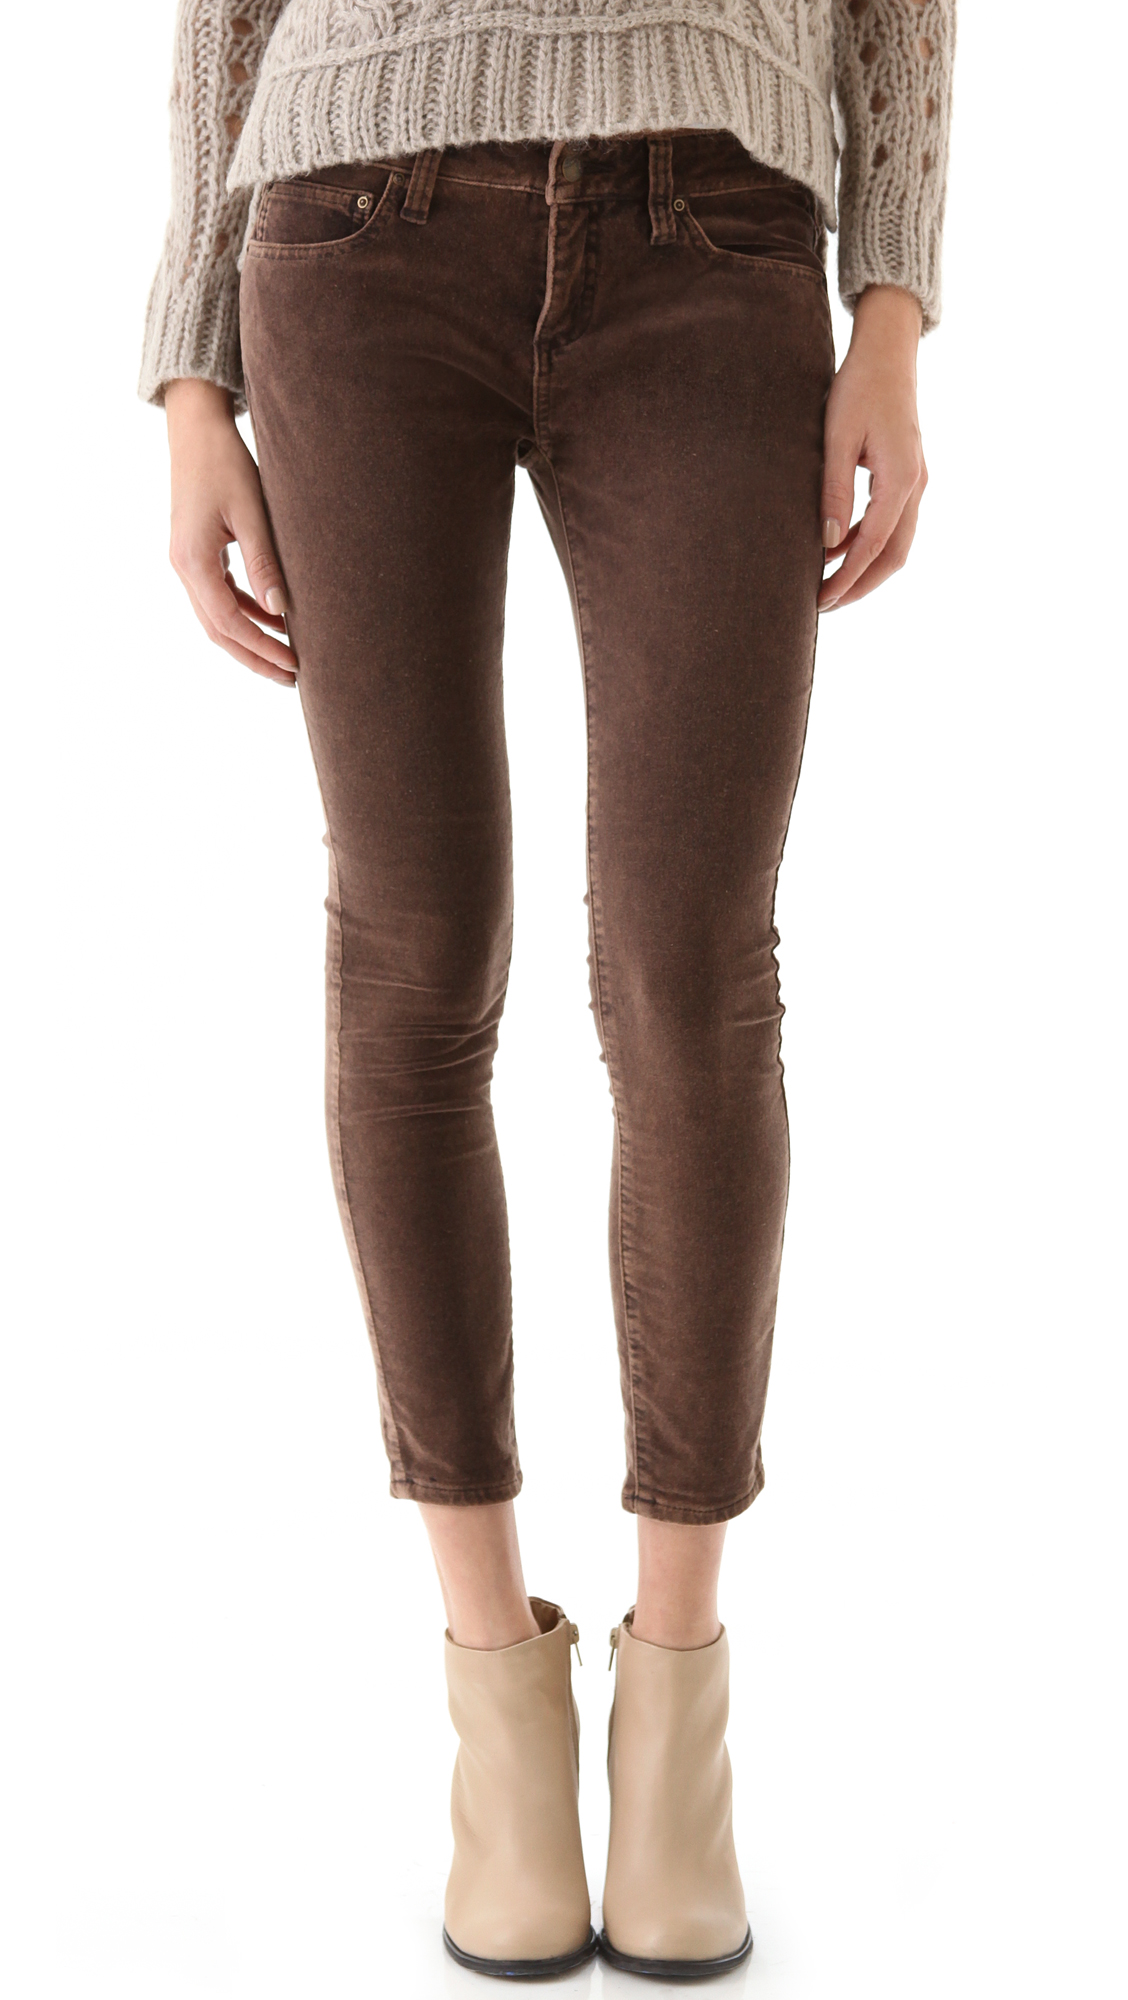 Tall Skinny Jeans For Women